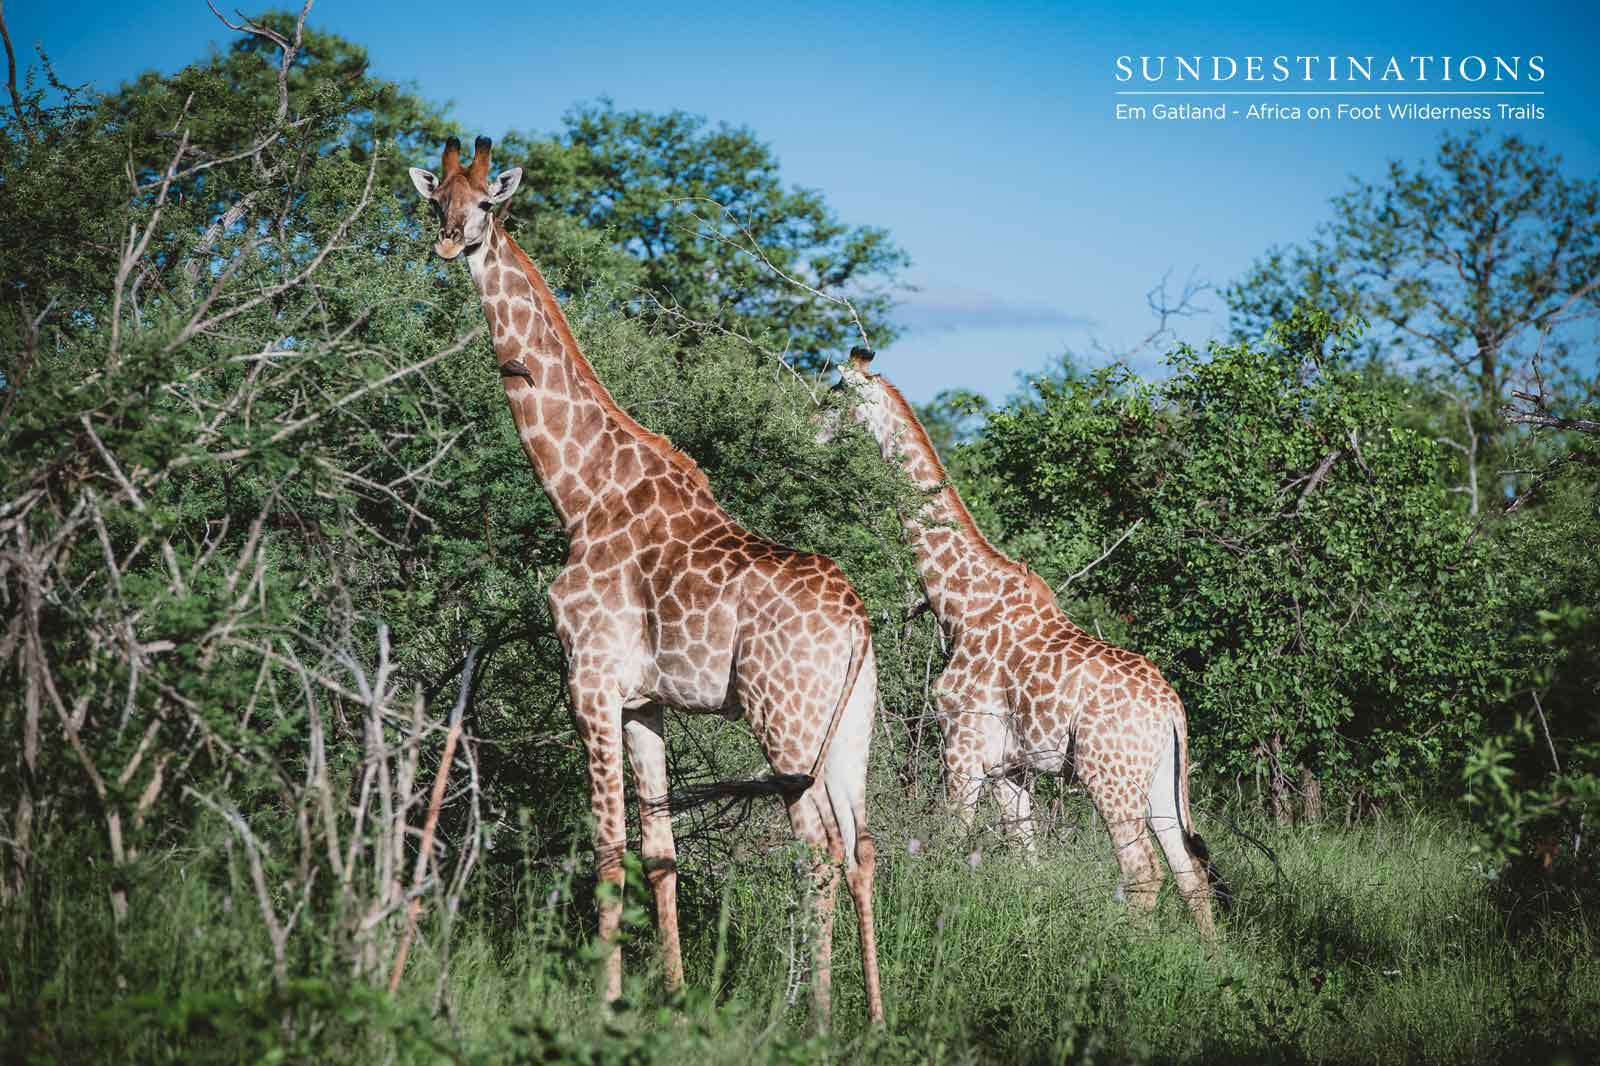 Giraffe Always Found on Trails